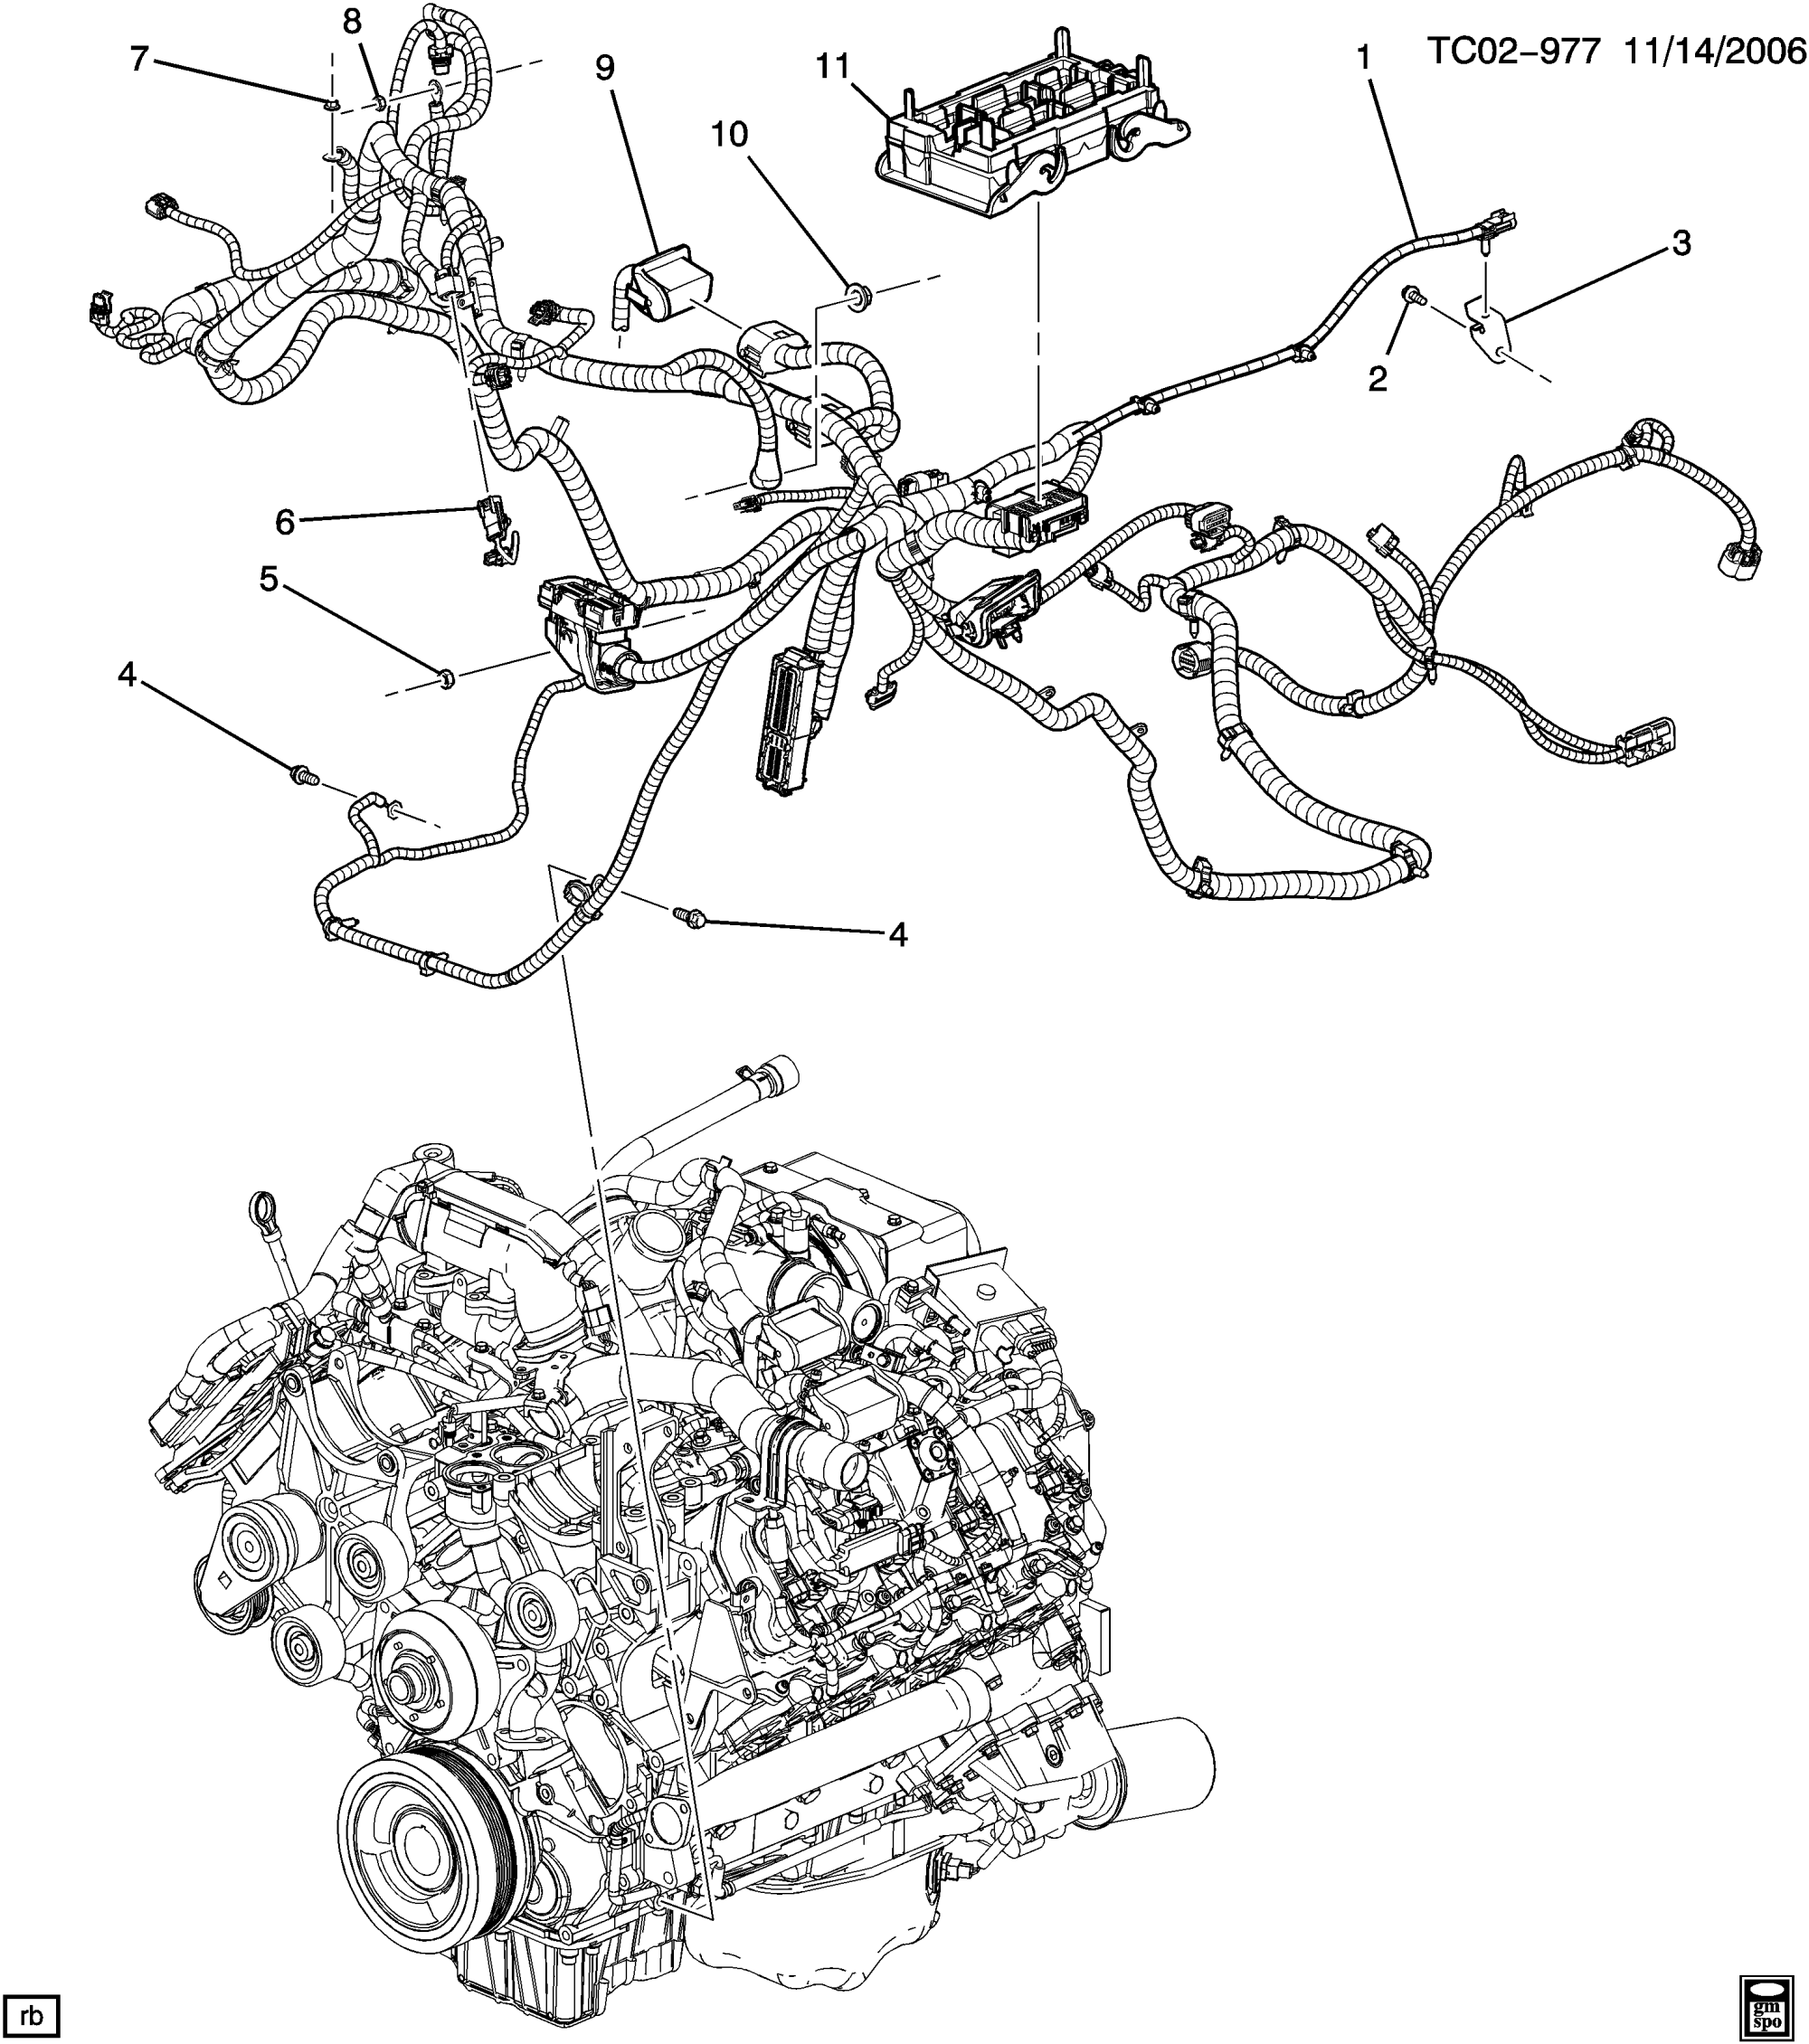 hight resolution of chevy duramax wiring harness wiring diagram data today 2008 chevy duramax wiring harness chevy duramax wiring harness